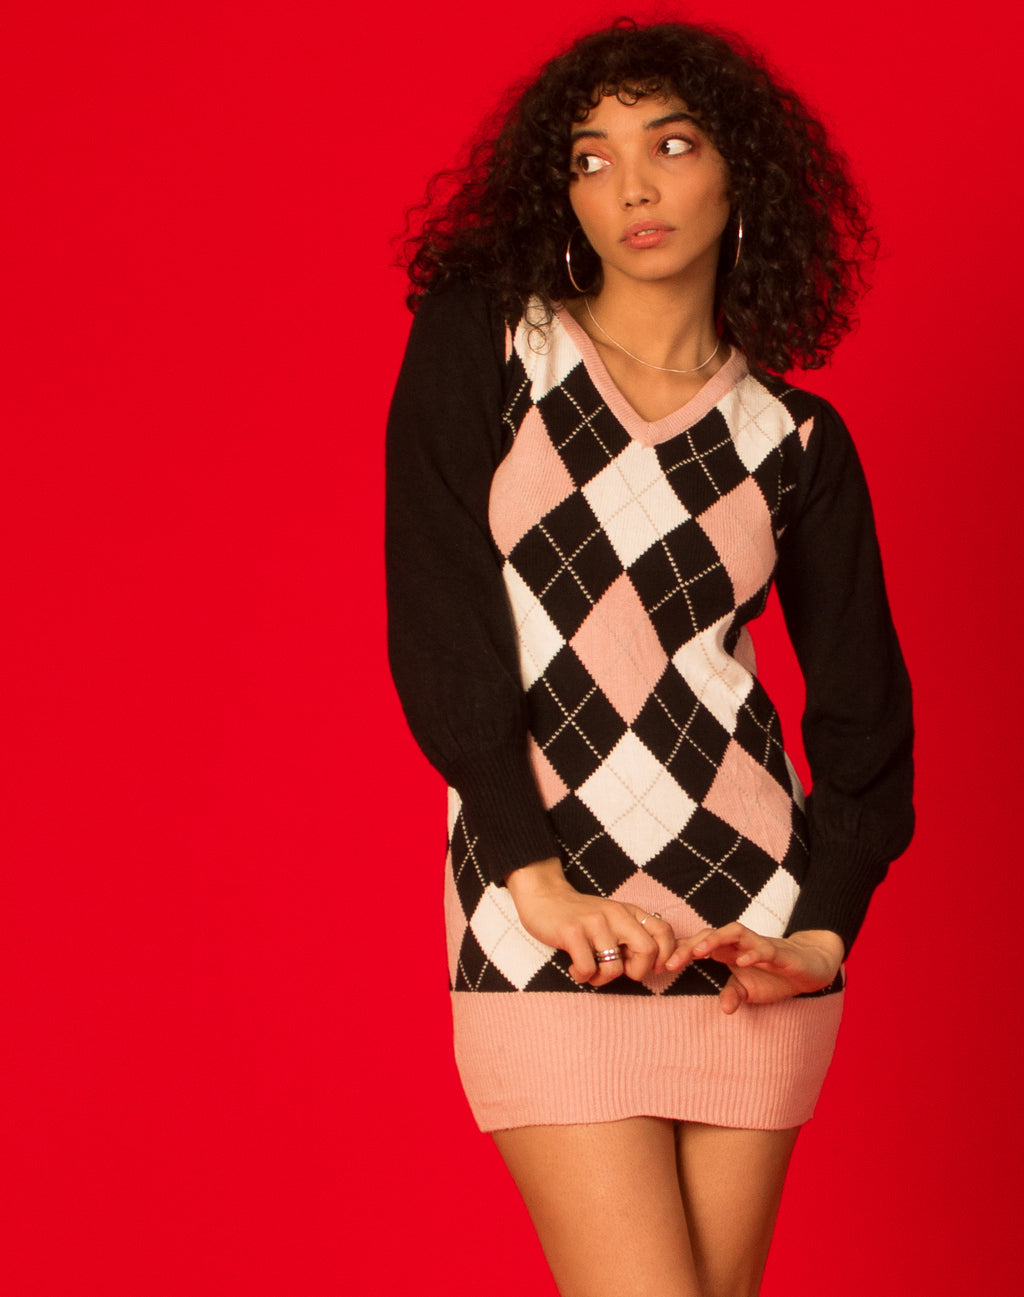 BARBIE ARGYLE SWEATER DRESS